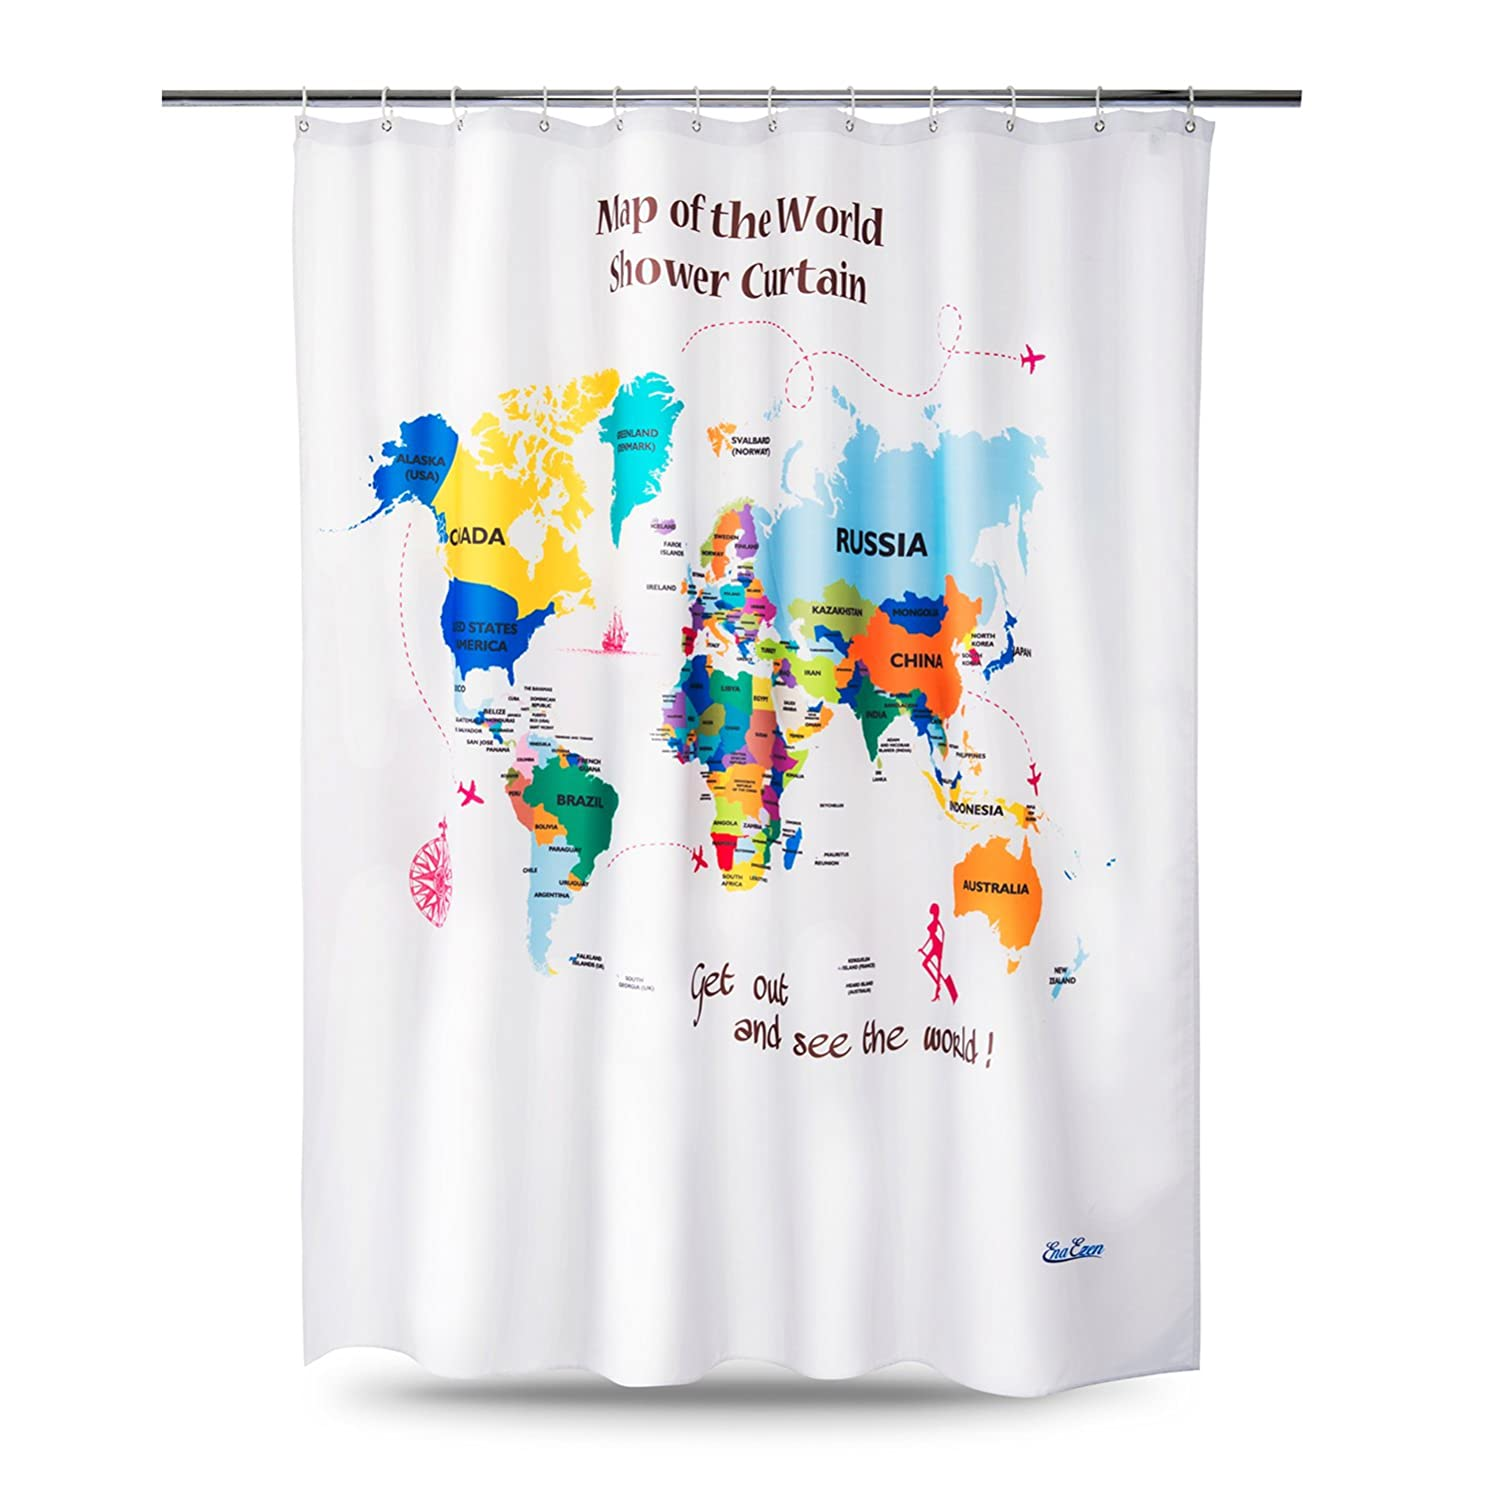 Amazon enaezen map of the world shower curtains mildew amazon enaezen map of the world shower curtains mildew resistant weighted educational the world map fabric shower curtain for bathroom kids students 71 gumiabroncs Gallery